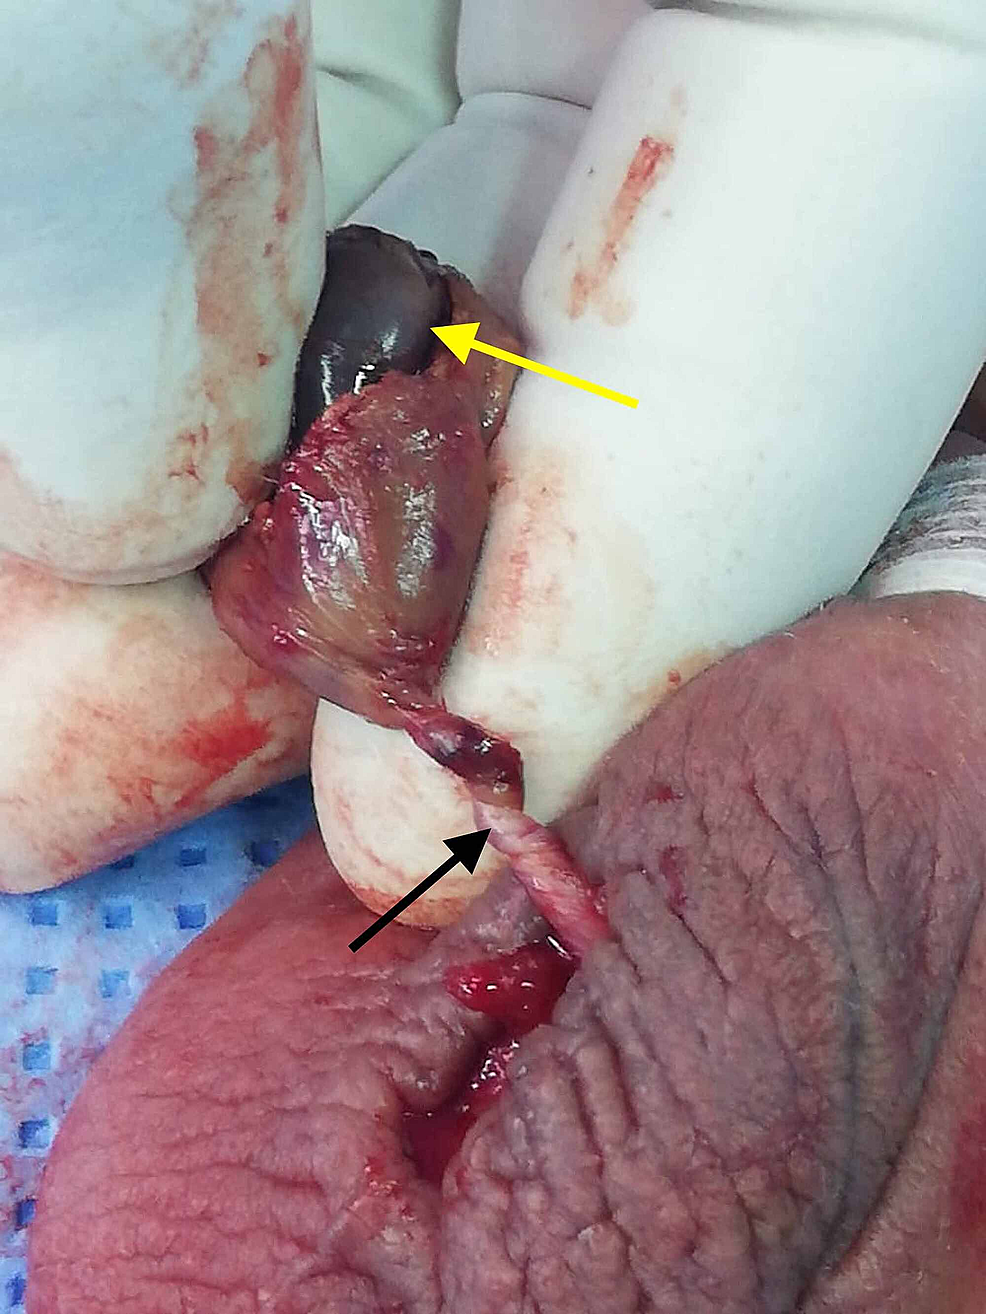 A-delineation-of-the-gangrenous-testis-(yellow-arrow)-due-to-testicular-torsion-with-multiple-twists-of-the-spermatic-cord-(black-arrow).